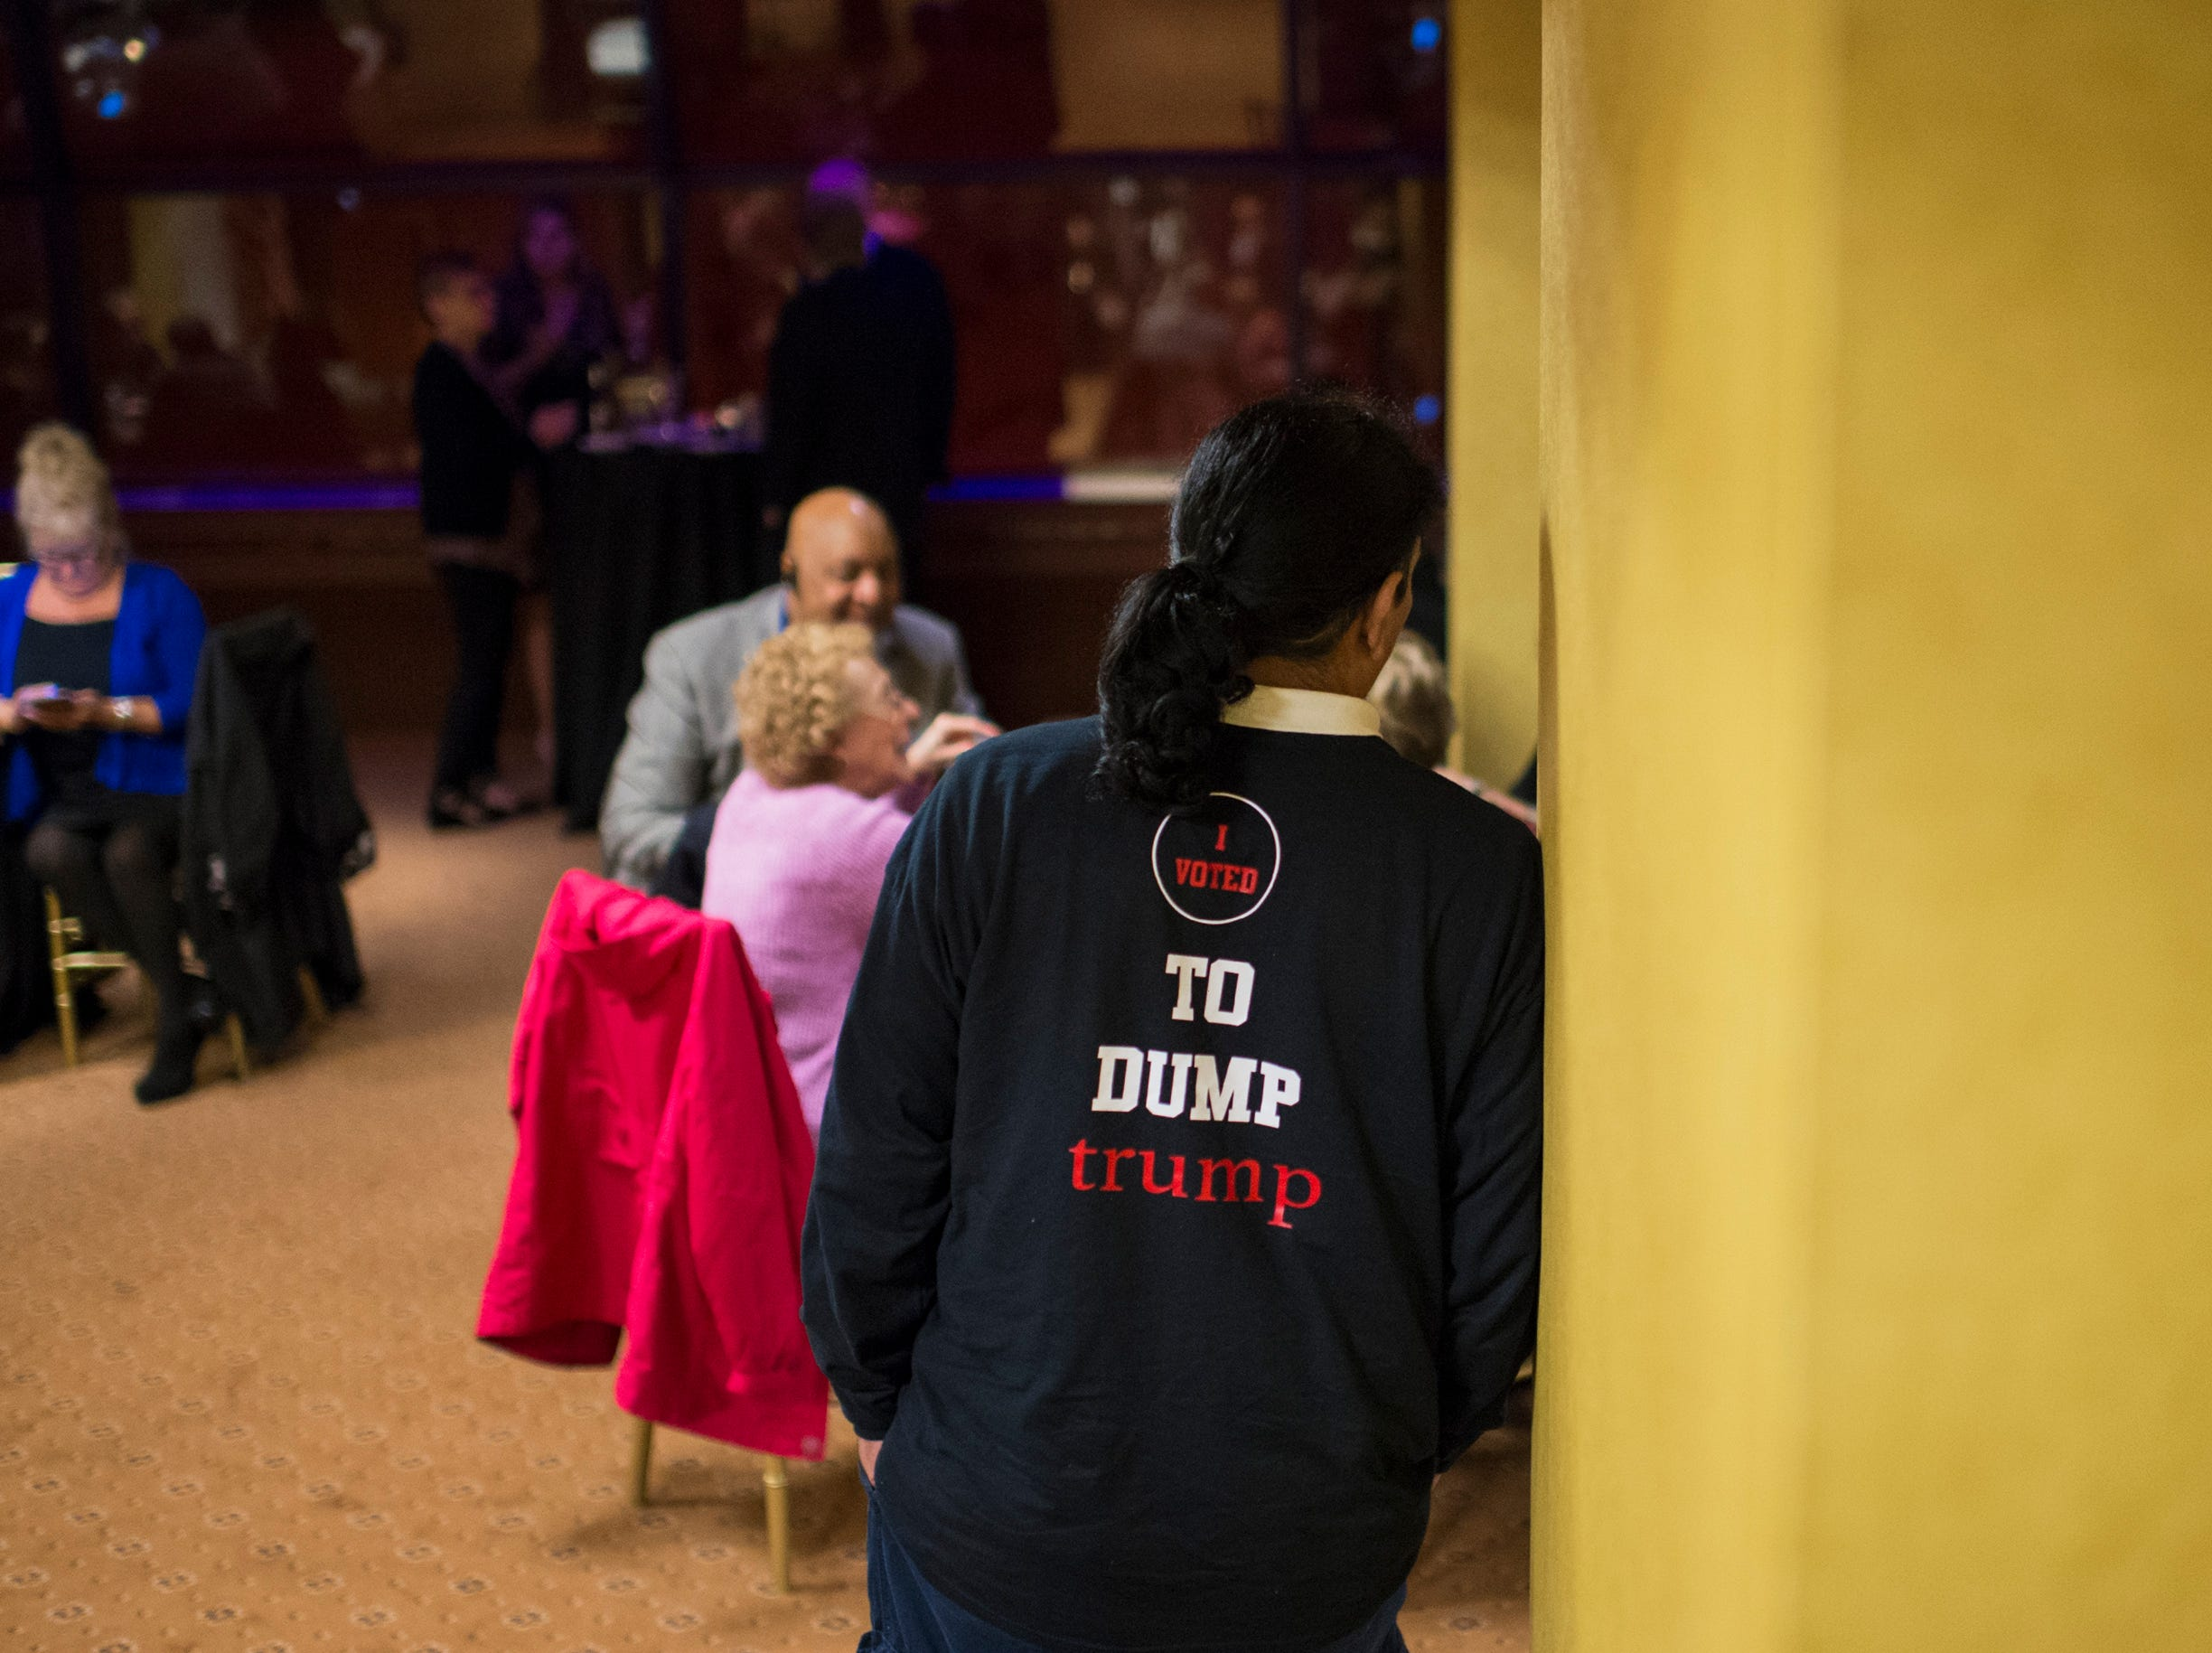 Alexander Morales of Pleasantville wears a sweatshirt reading 'I voted to dump Trump' at the election night headquarters for NJ Sen. Jeff Van Drew, D-1, Tuesday, Nov. 6, 2018 at The Claridge in Atlantic City, N.J.